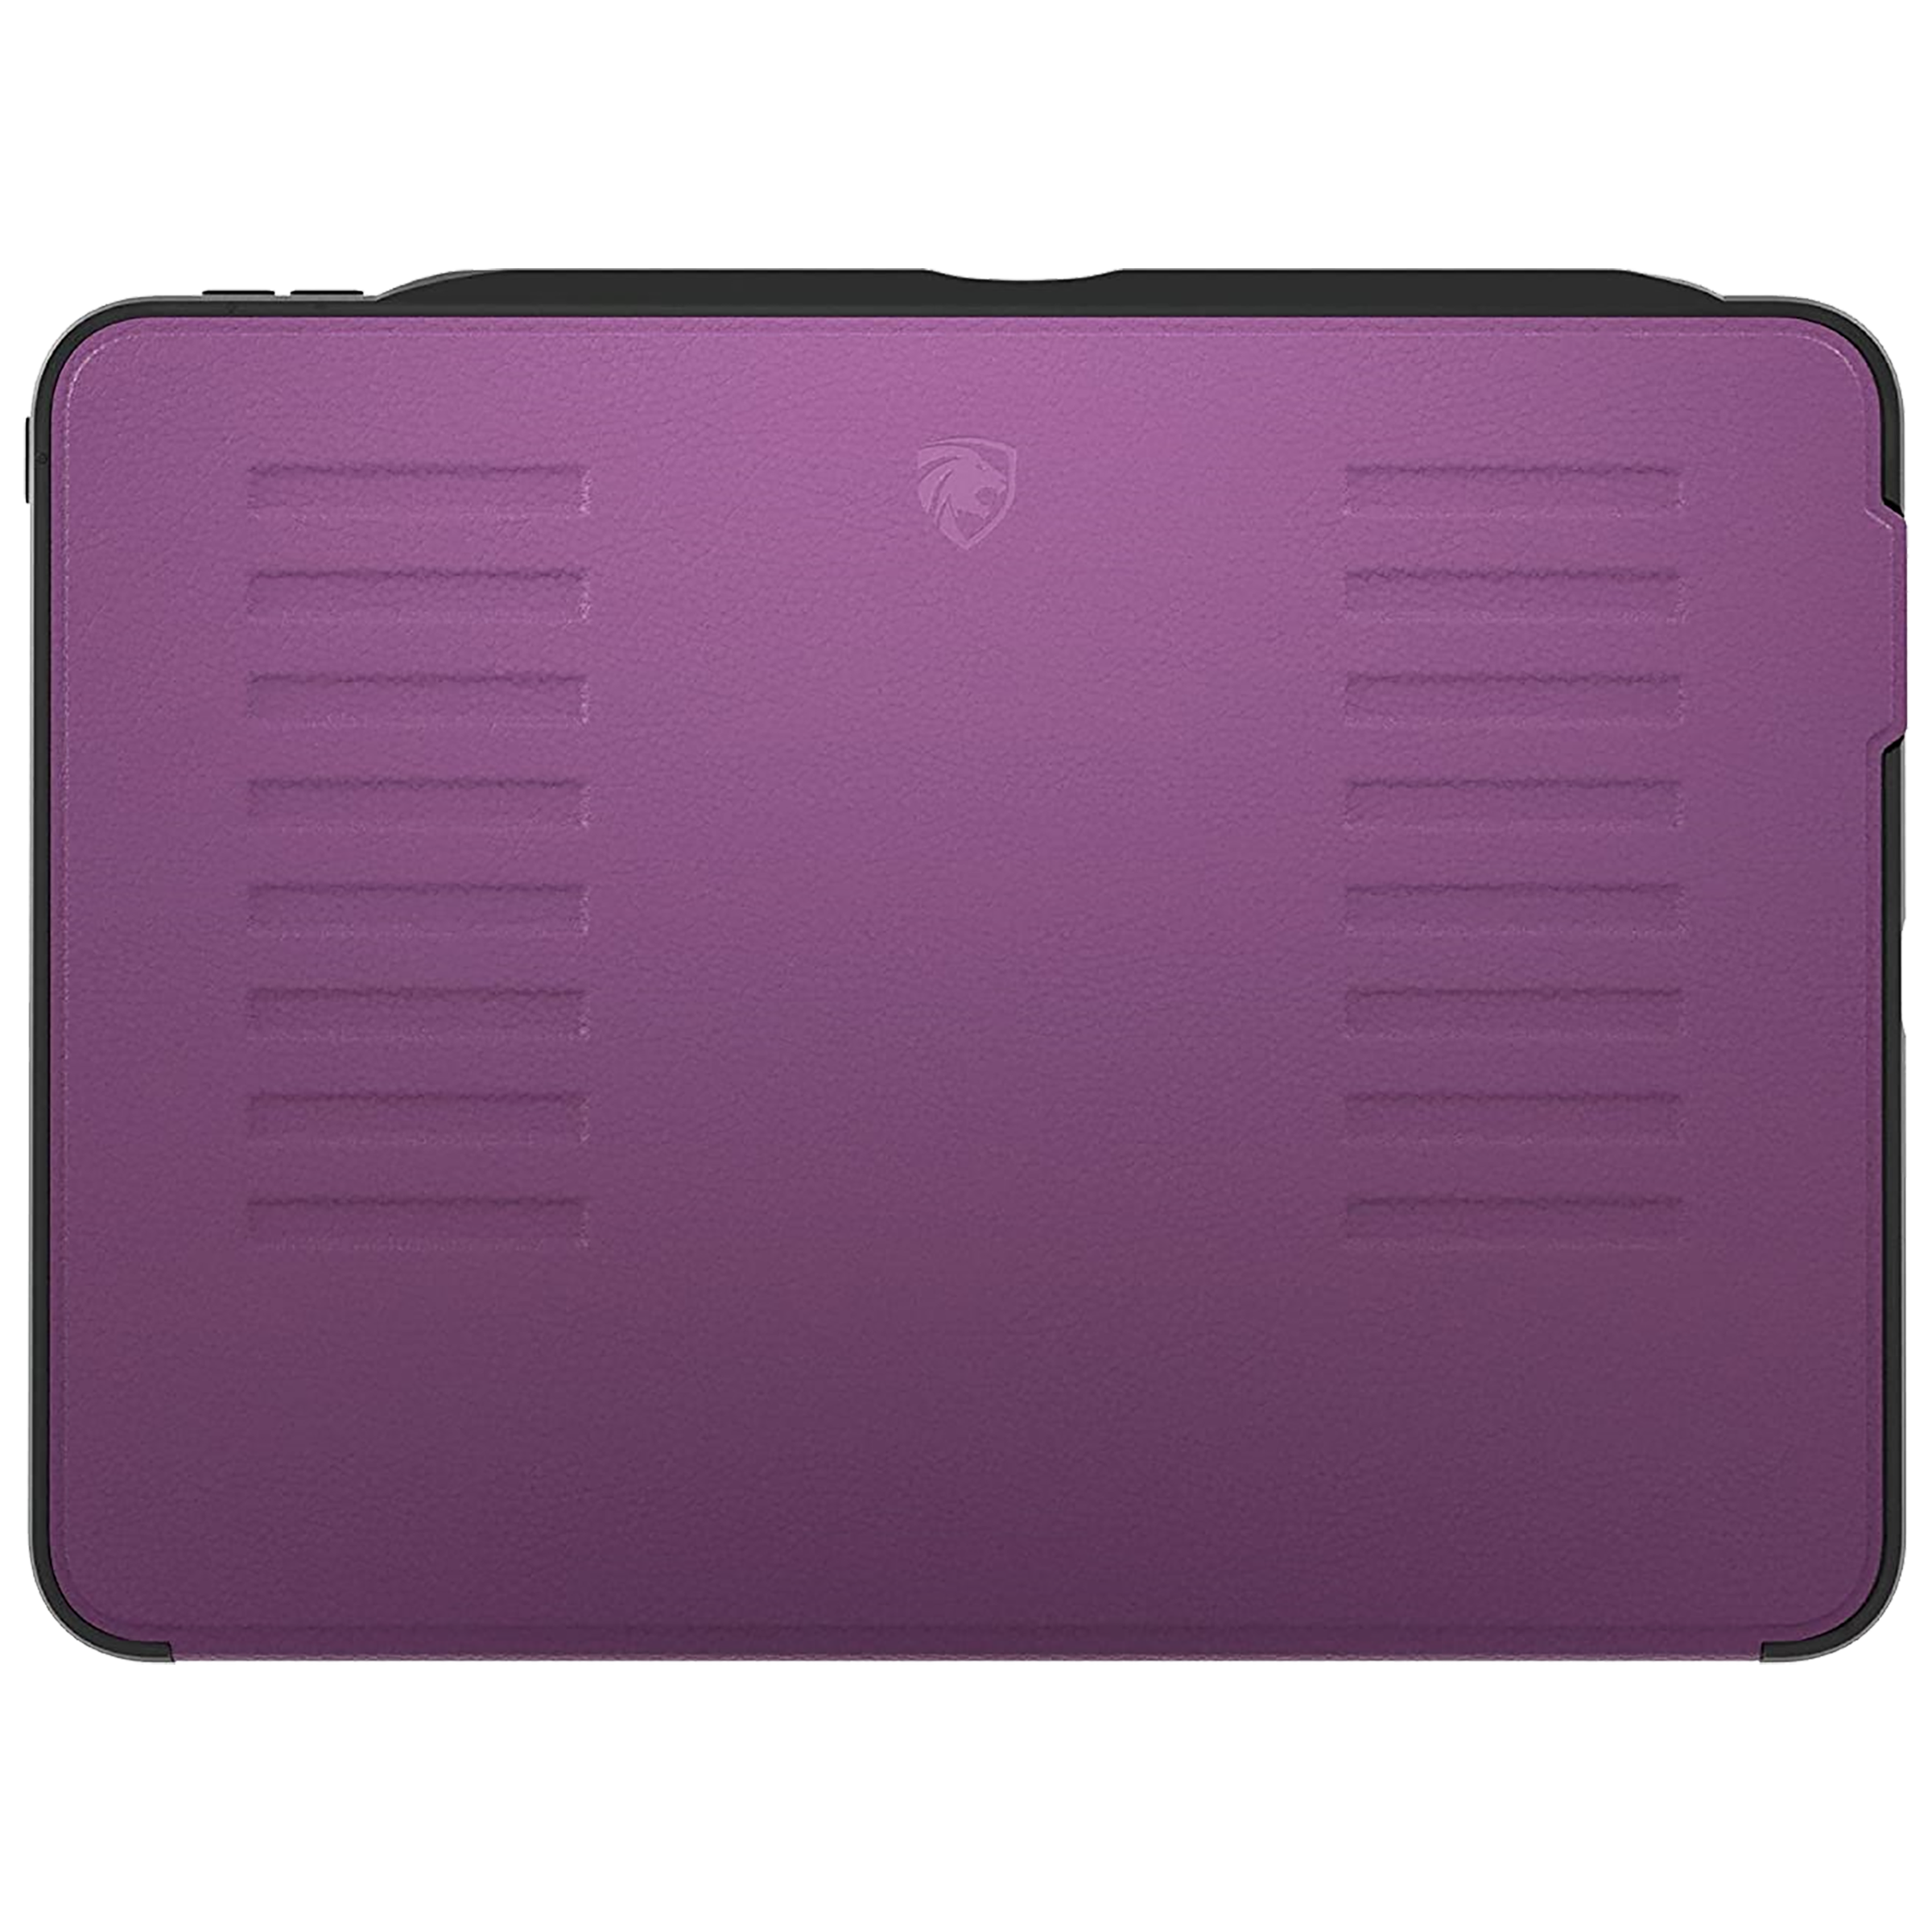 Zugu Alpha Polycarbonate Back Case with Stand For iPad Pro 11 (2nd Gen) (Soft Microfiber Interior, ZG-20-11P, Purple)_1